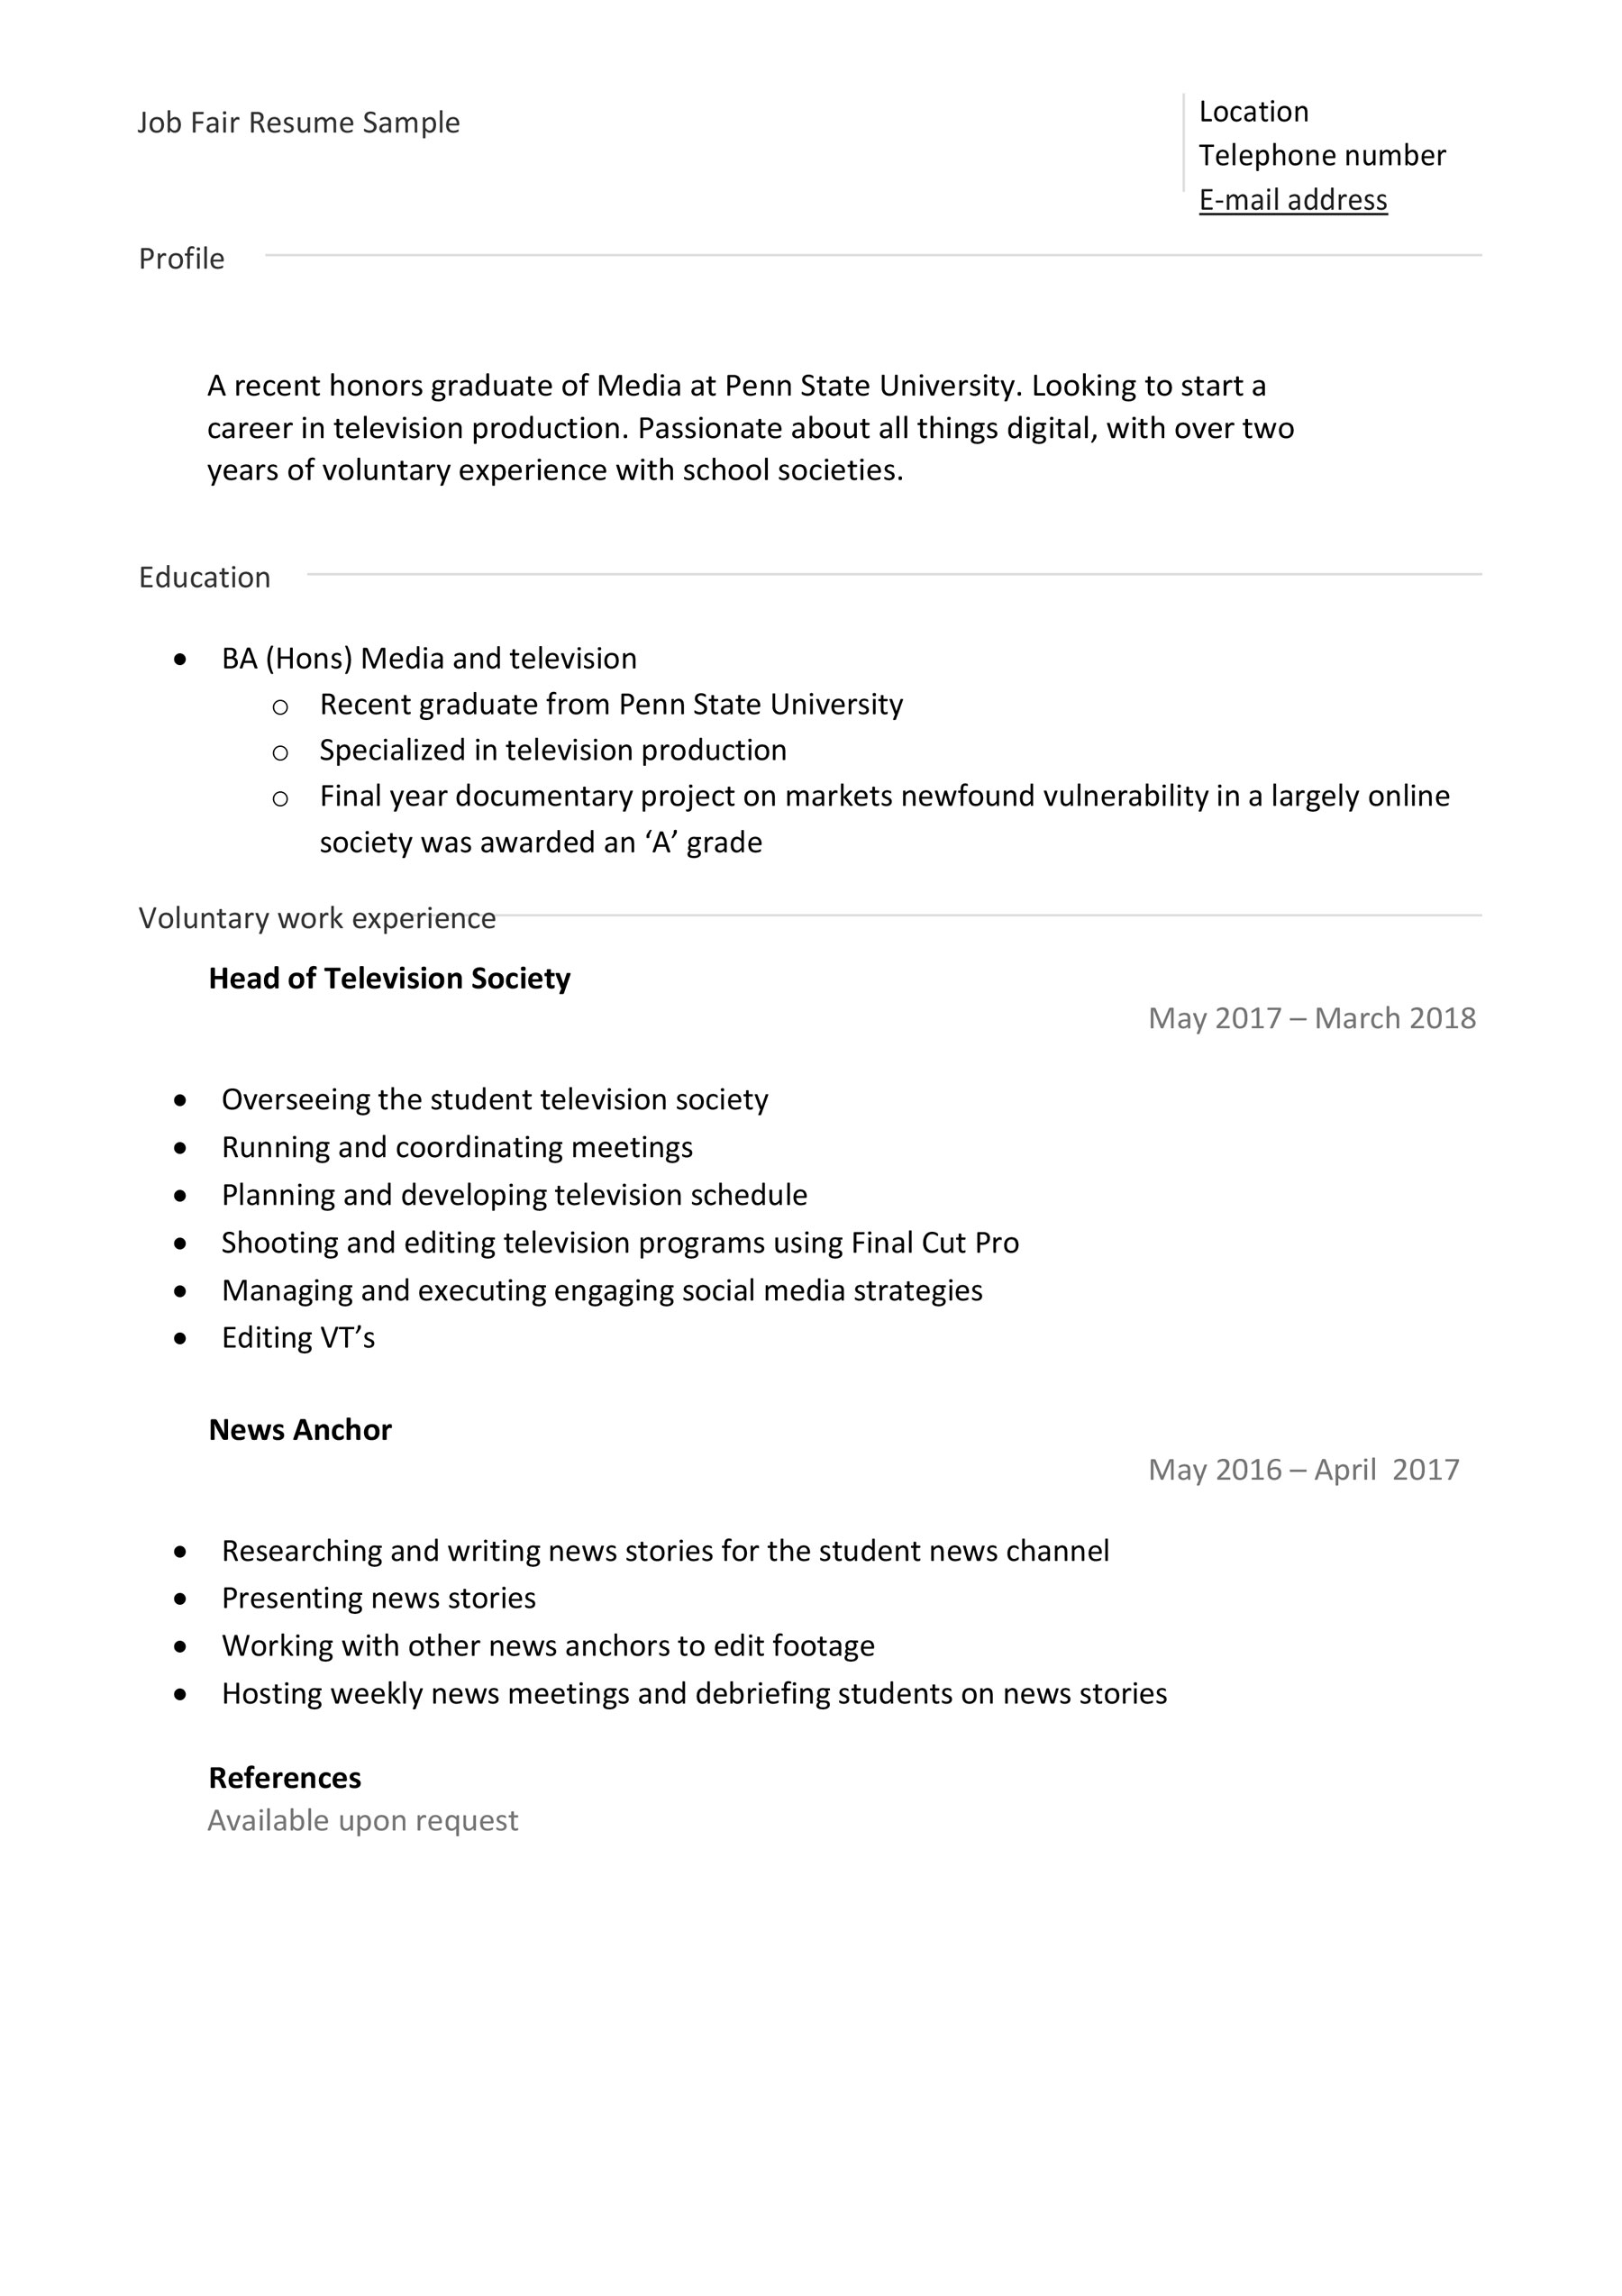 Resume for Job Fair | Job Fair Resume Examples, Tips